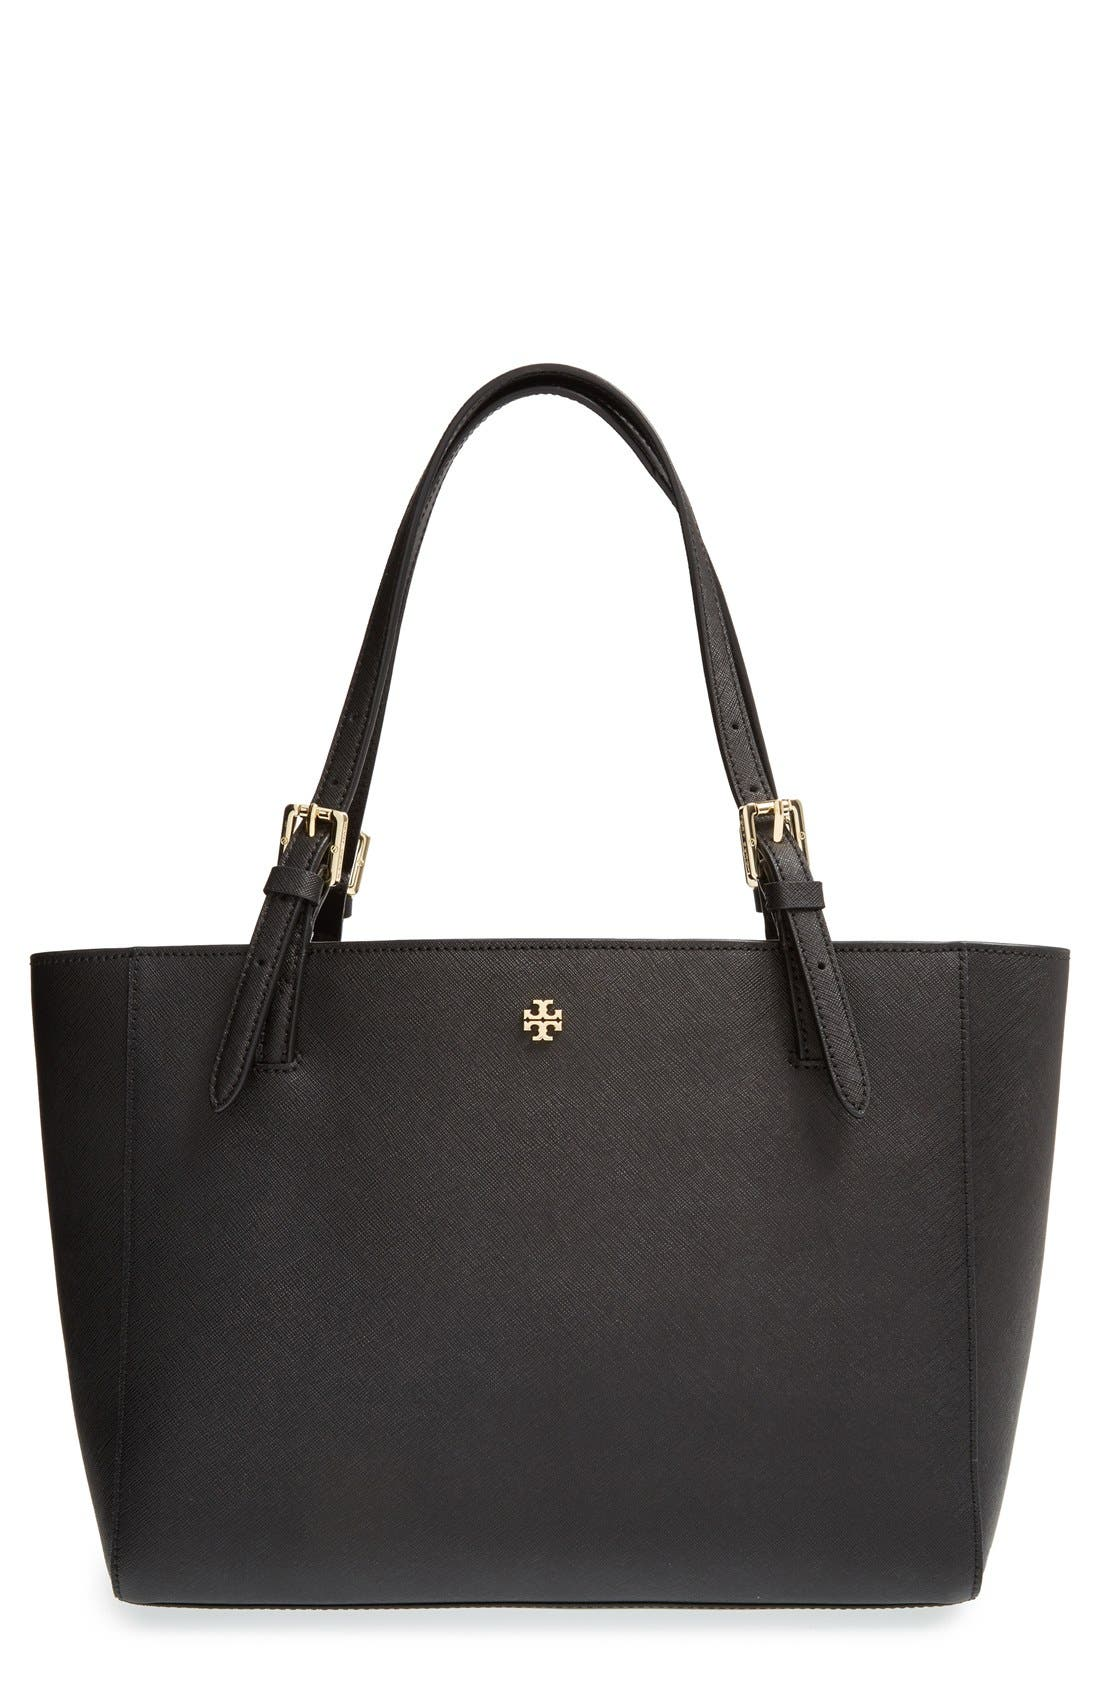 'Small York' Saffiano Leather Buckle Tote,                             Main thumbnail 3, color,